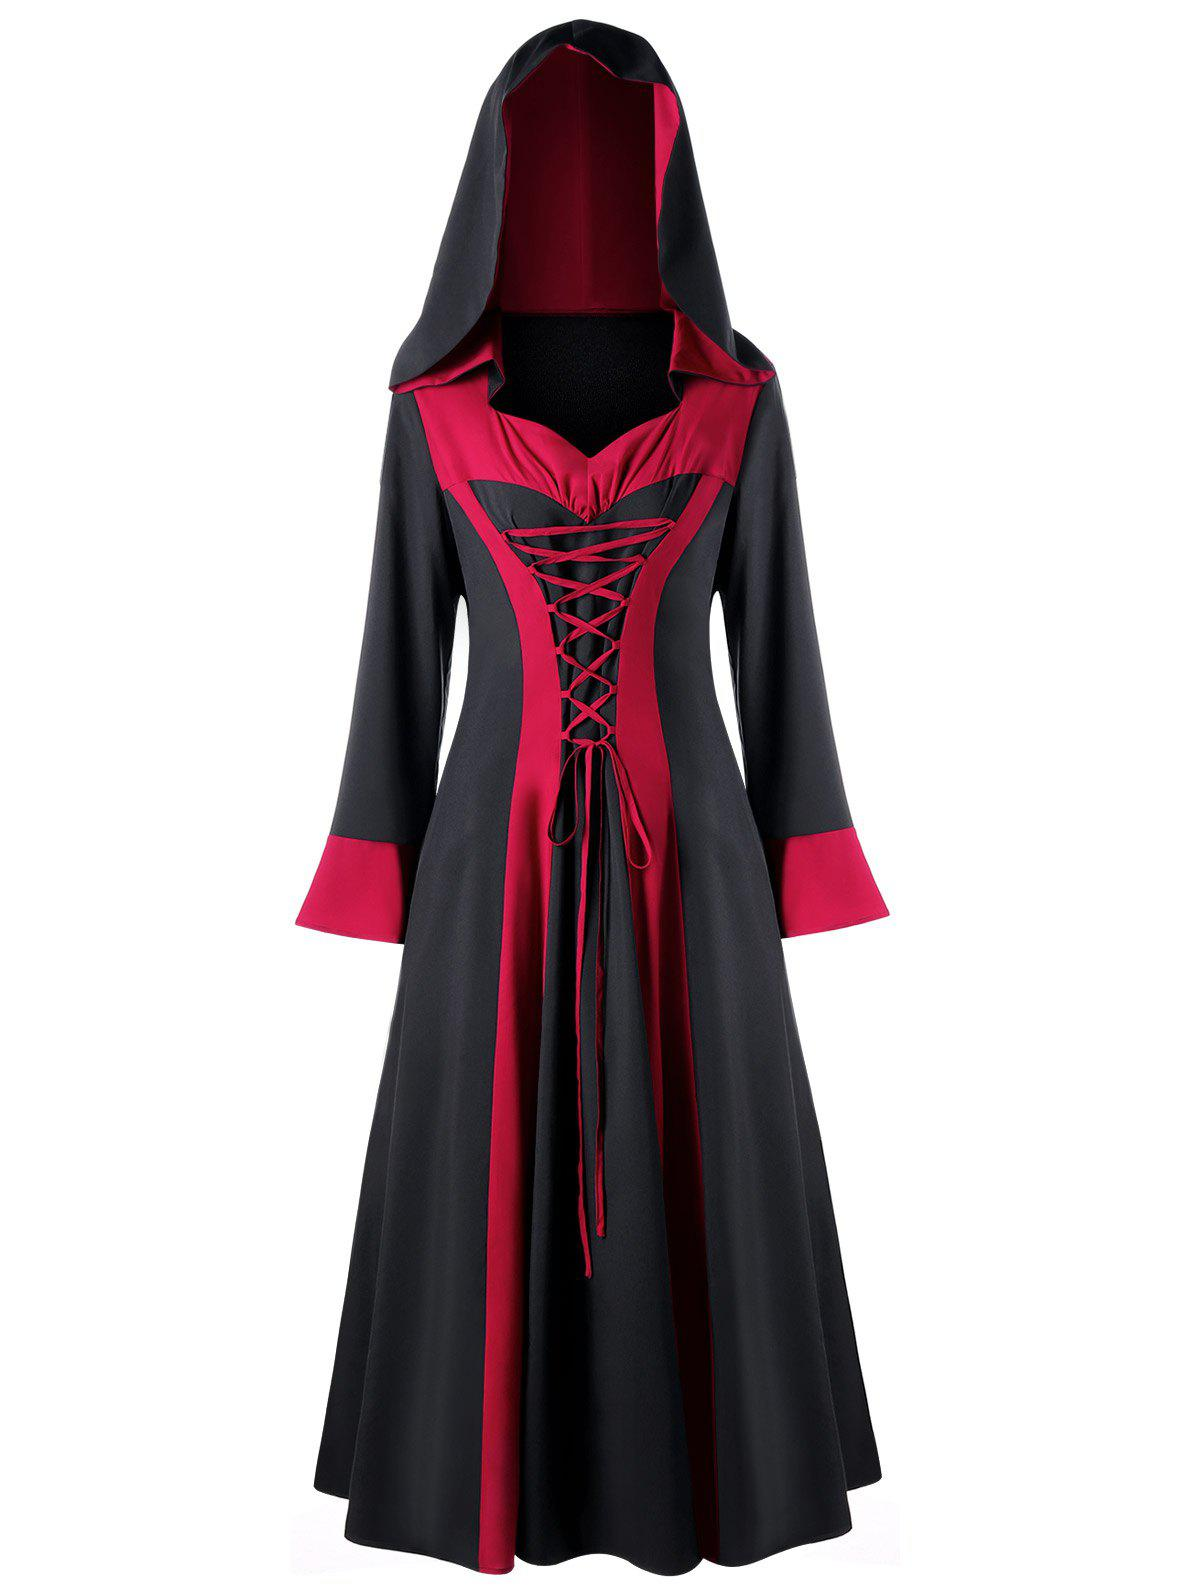 Plus Size Flare Sleeve Two Tone Lace Up Hooded DressWOMEN<br><br>Size: 4XL; Color: BLACK&amp;RED; Style: Casual; Material: Polyester,Spandex; Silhouette: A-Line; Dresses Length: Ankle-Length; Neckline: Hooded; Sleeve Type: Flare Sleeve; Sleeve Length: Long Sleeves; Embellishment: Criss-Cross; Pattern Type: Others; With Belt: No; Season: Fall,Spring,Winter; Weight: 0.4500kg; Package Contents: 1 x Dress;